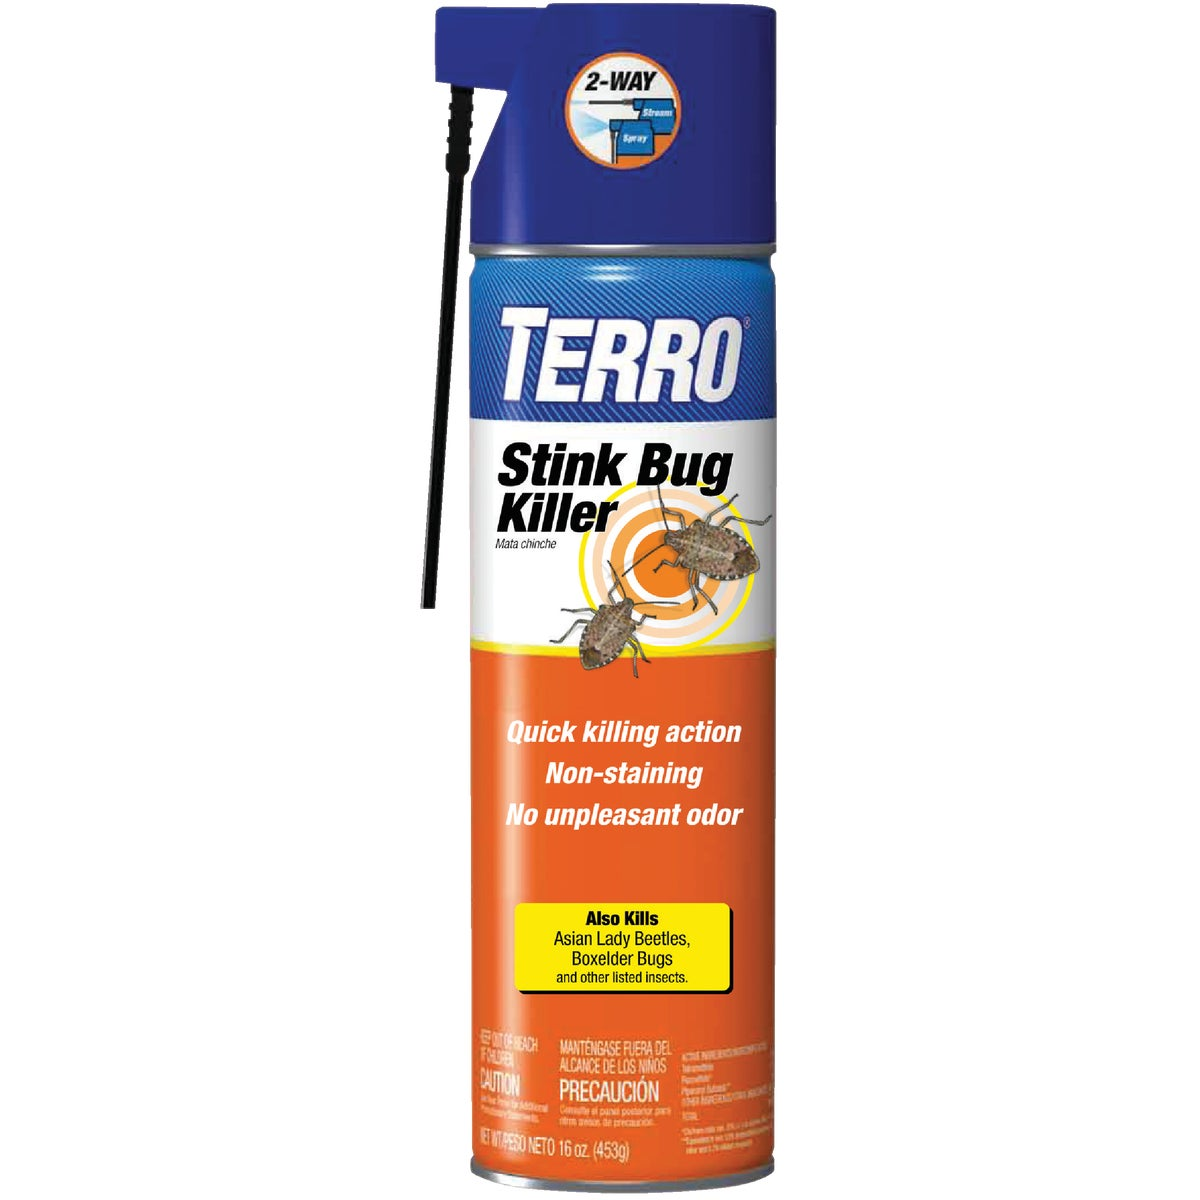 16OZ AERO STINKBUG KILLR - T3500-6 by Woodstream Corp